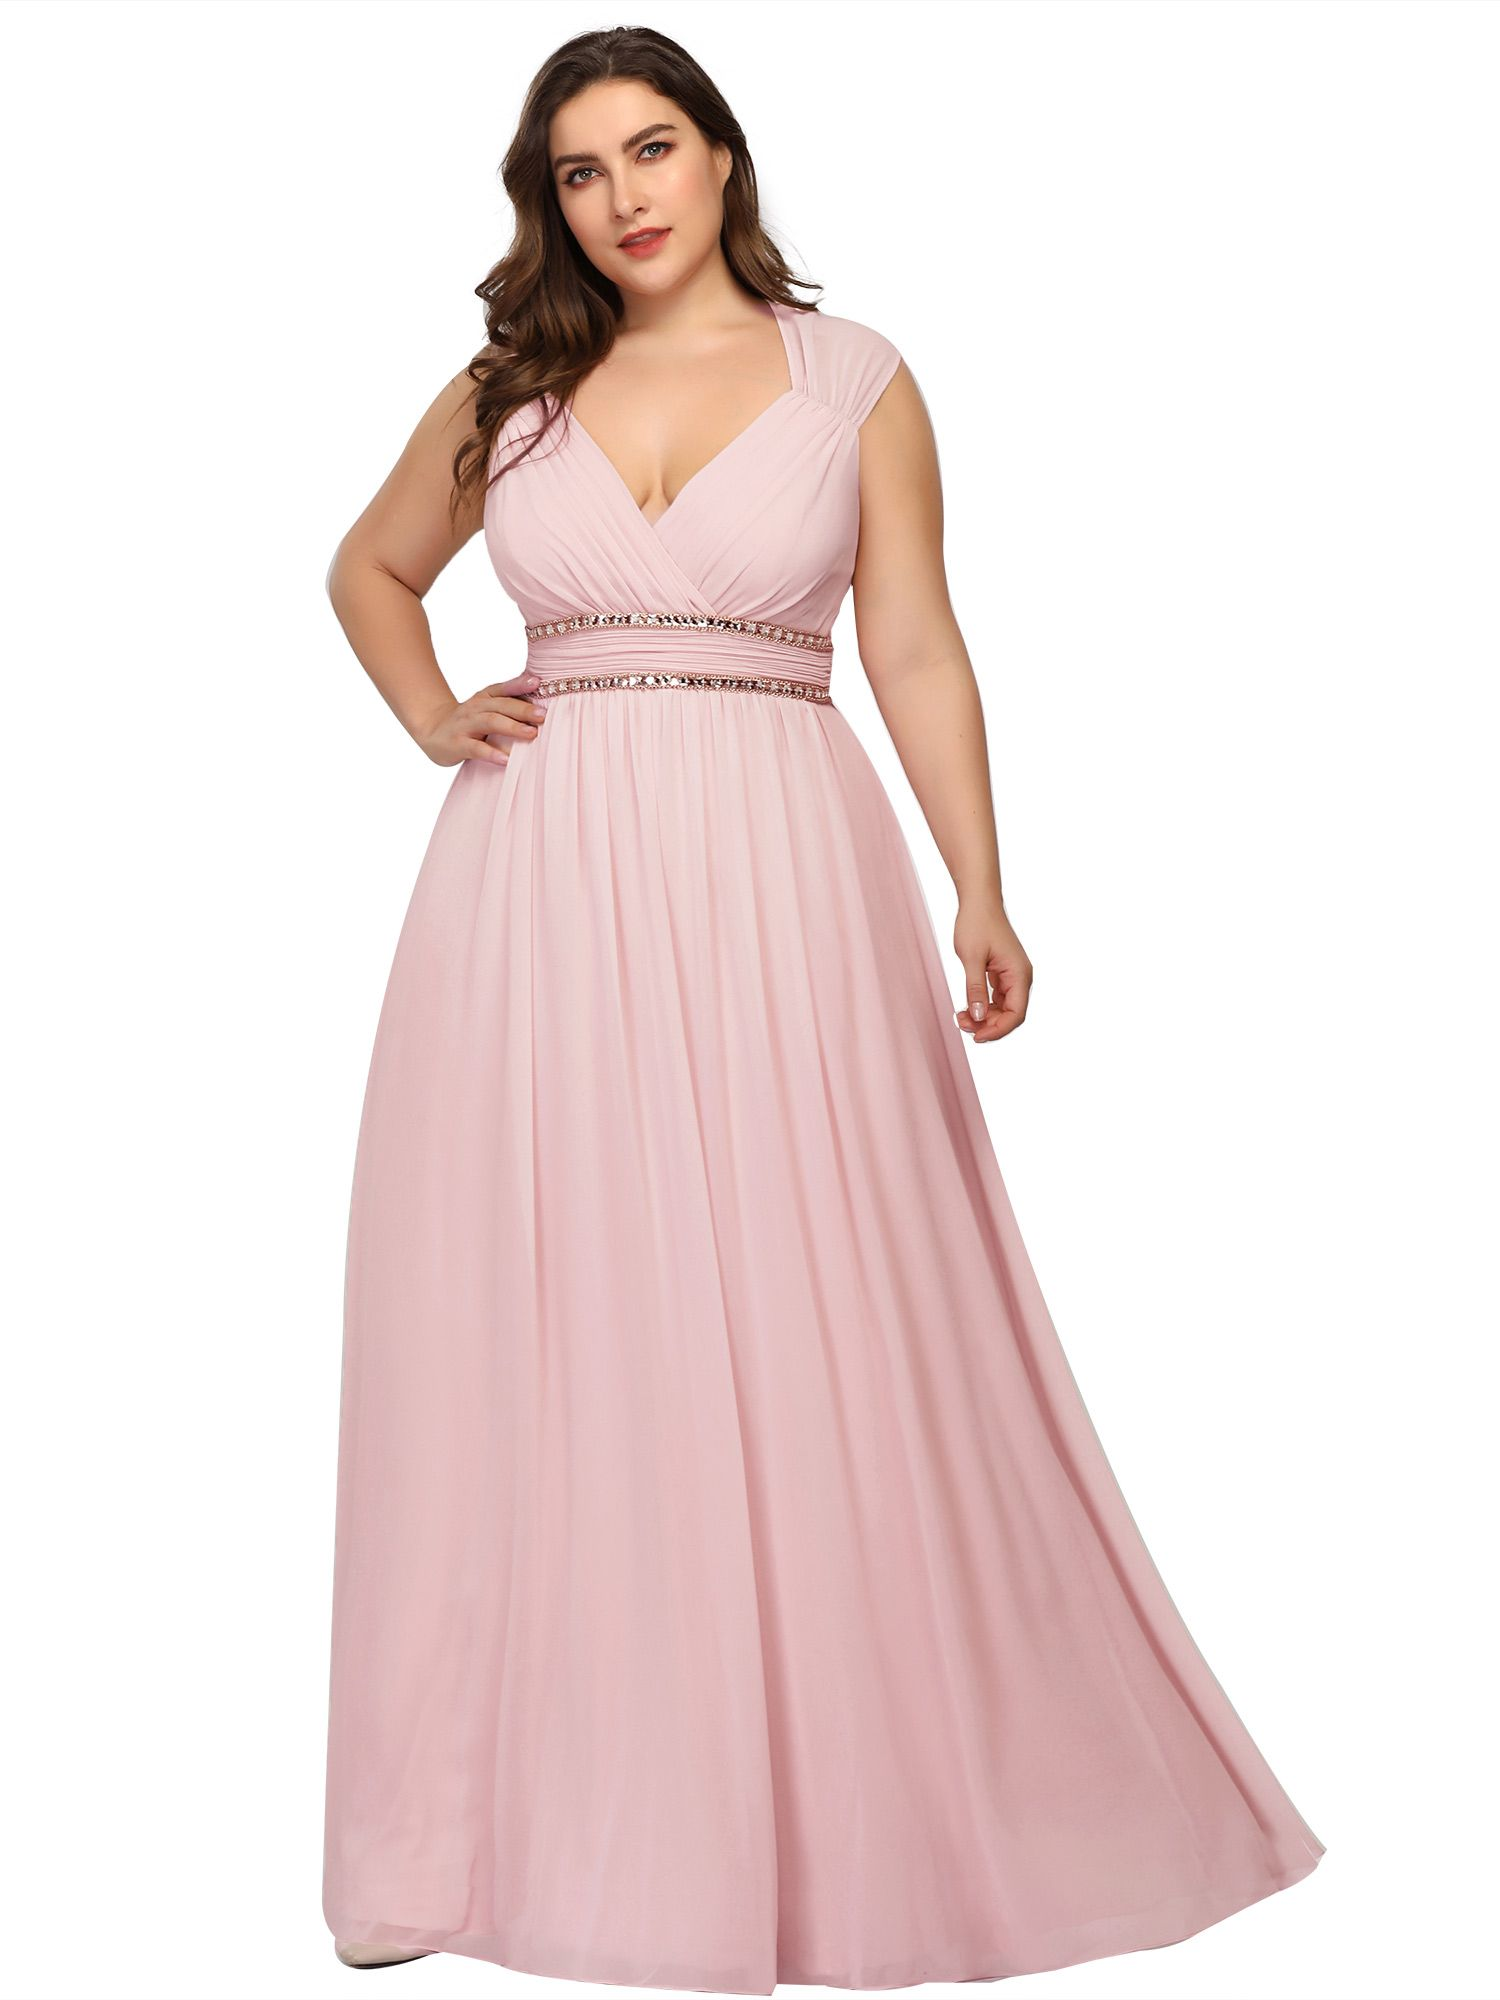 Ever Pretty Ever Pretty Womens Plus Size Empire Waist Long Evening Military Ball Gowns For Women 86973 Pink Us20 Walmart Com In 2020 Military Ball Gowns Bridesmaid Dresses Plus Size Pink Bridesmaid Dresses [ 2000 x 1500 Pixel ]